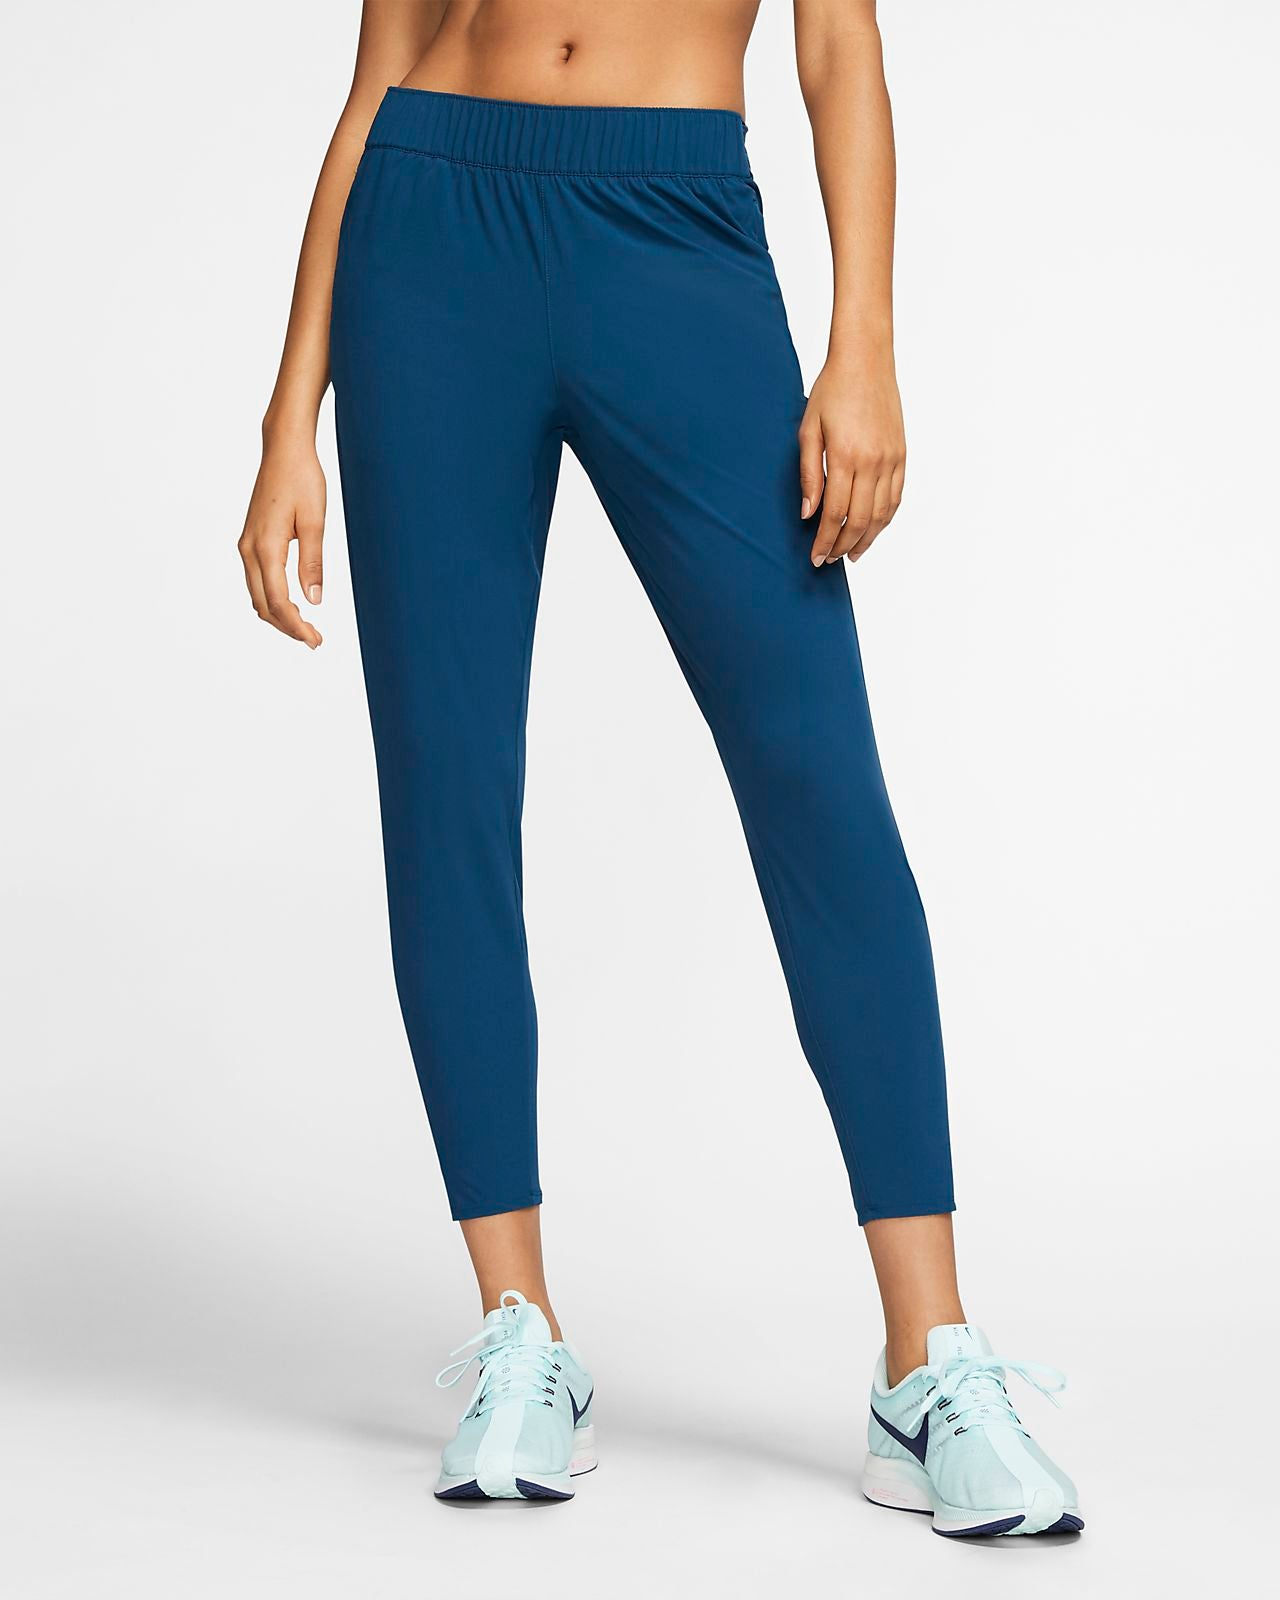 Women's NIKE  ESSENTIAL 7/8 Running Trousers BV2898-432